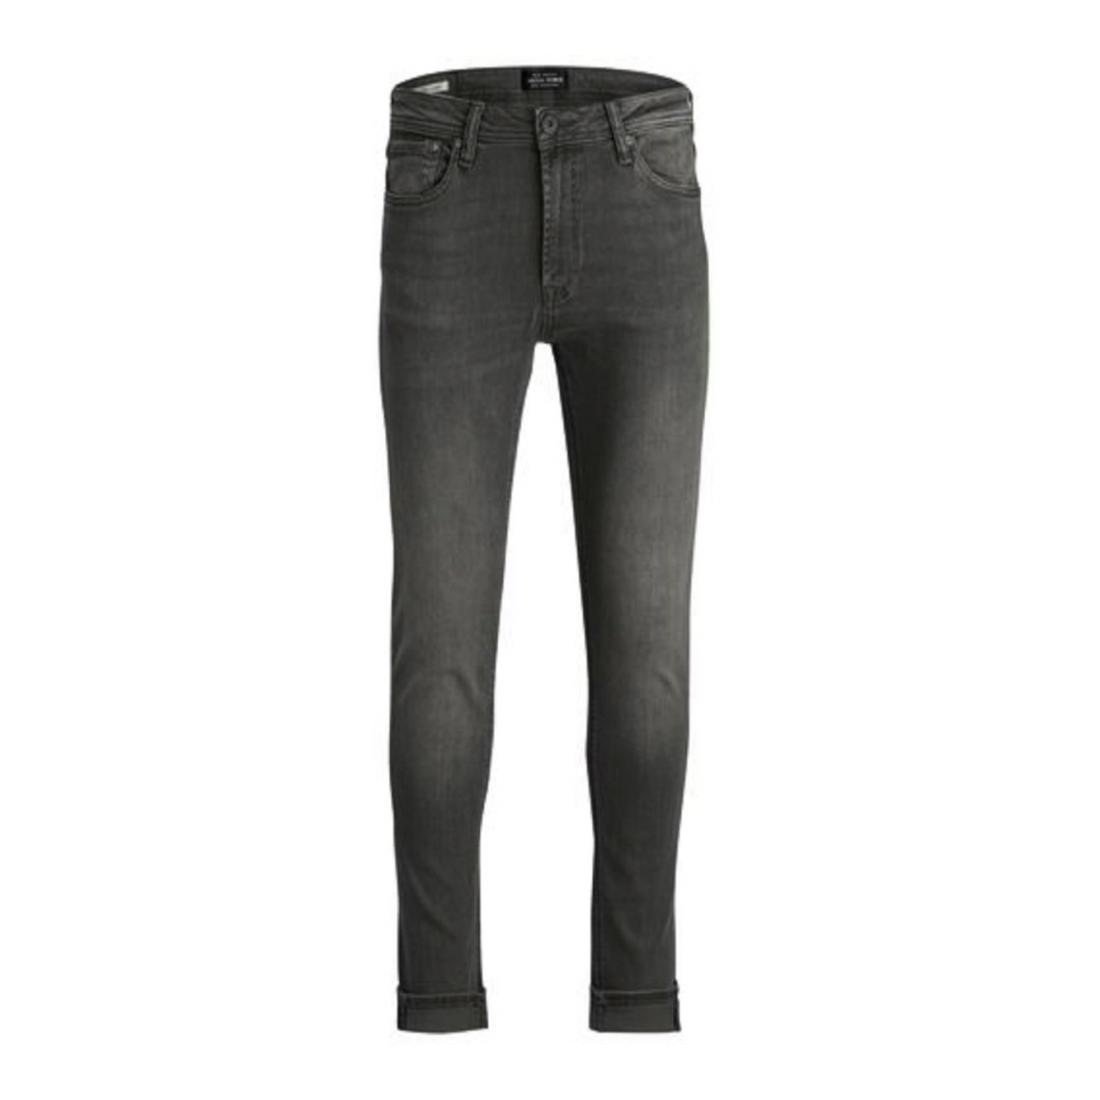 Jack & Jones Jeans Herren JJILIAM JJORIGINAL AM 010